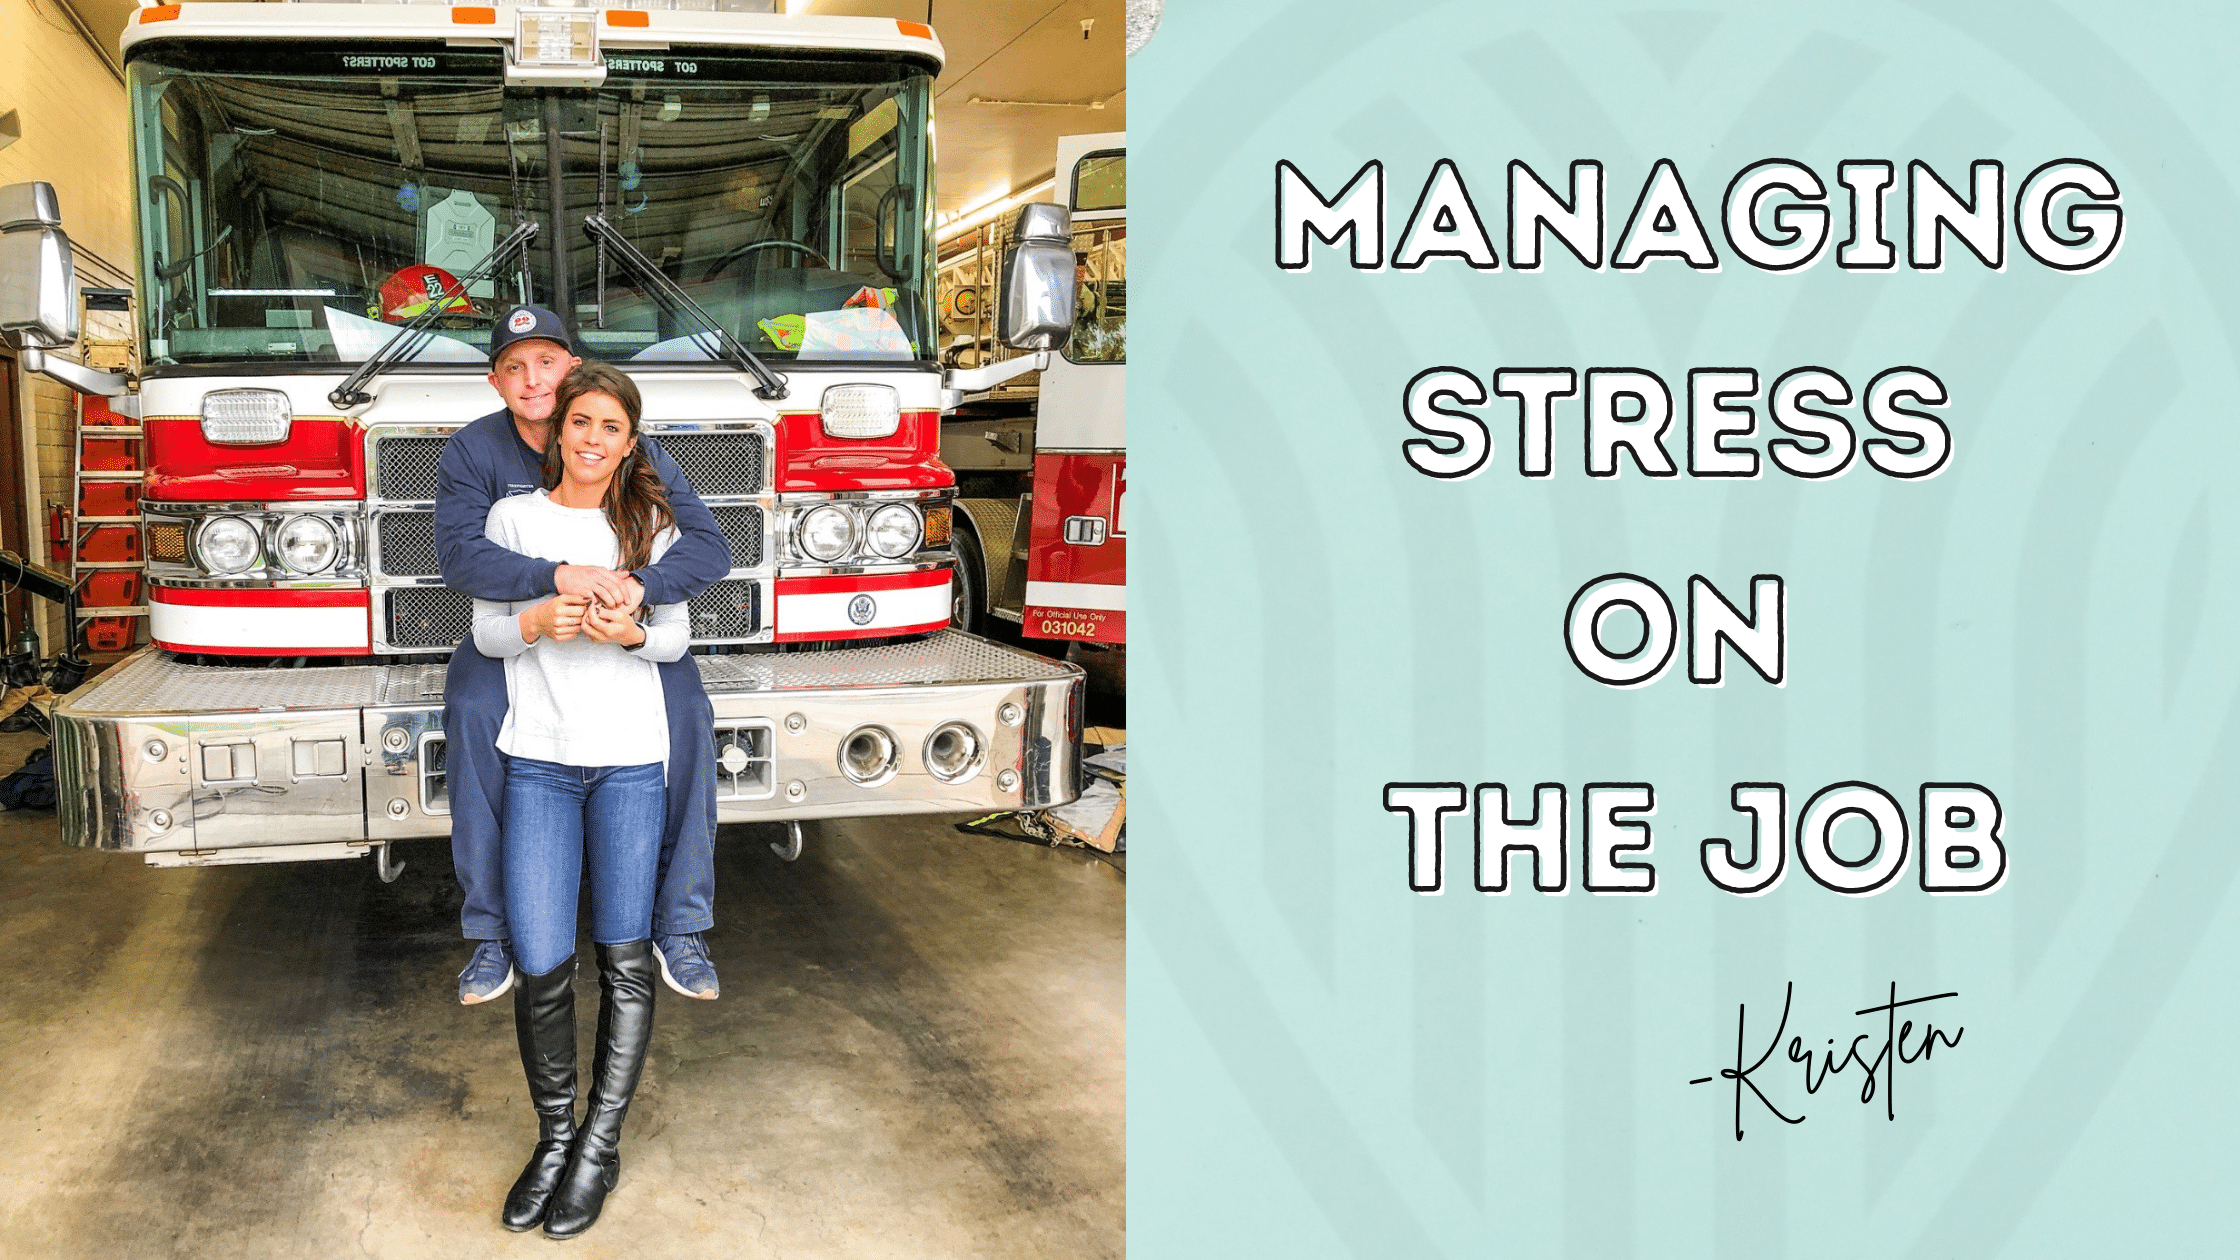 Managing stress on the job